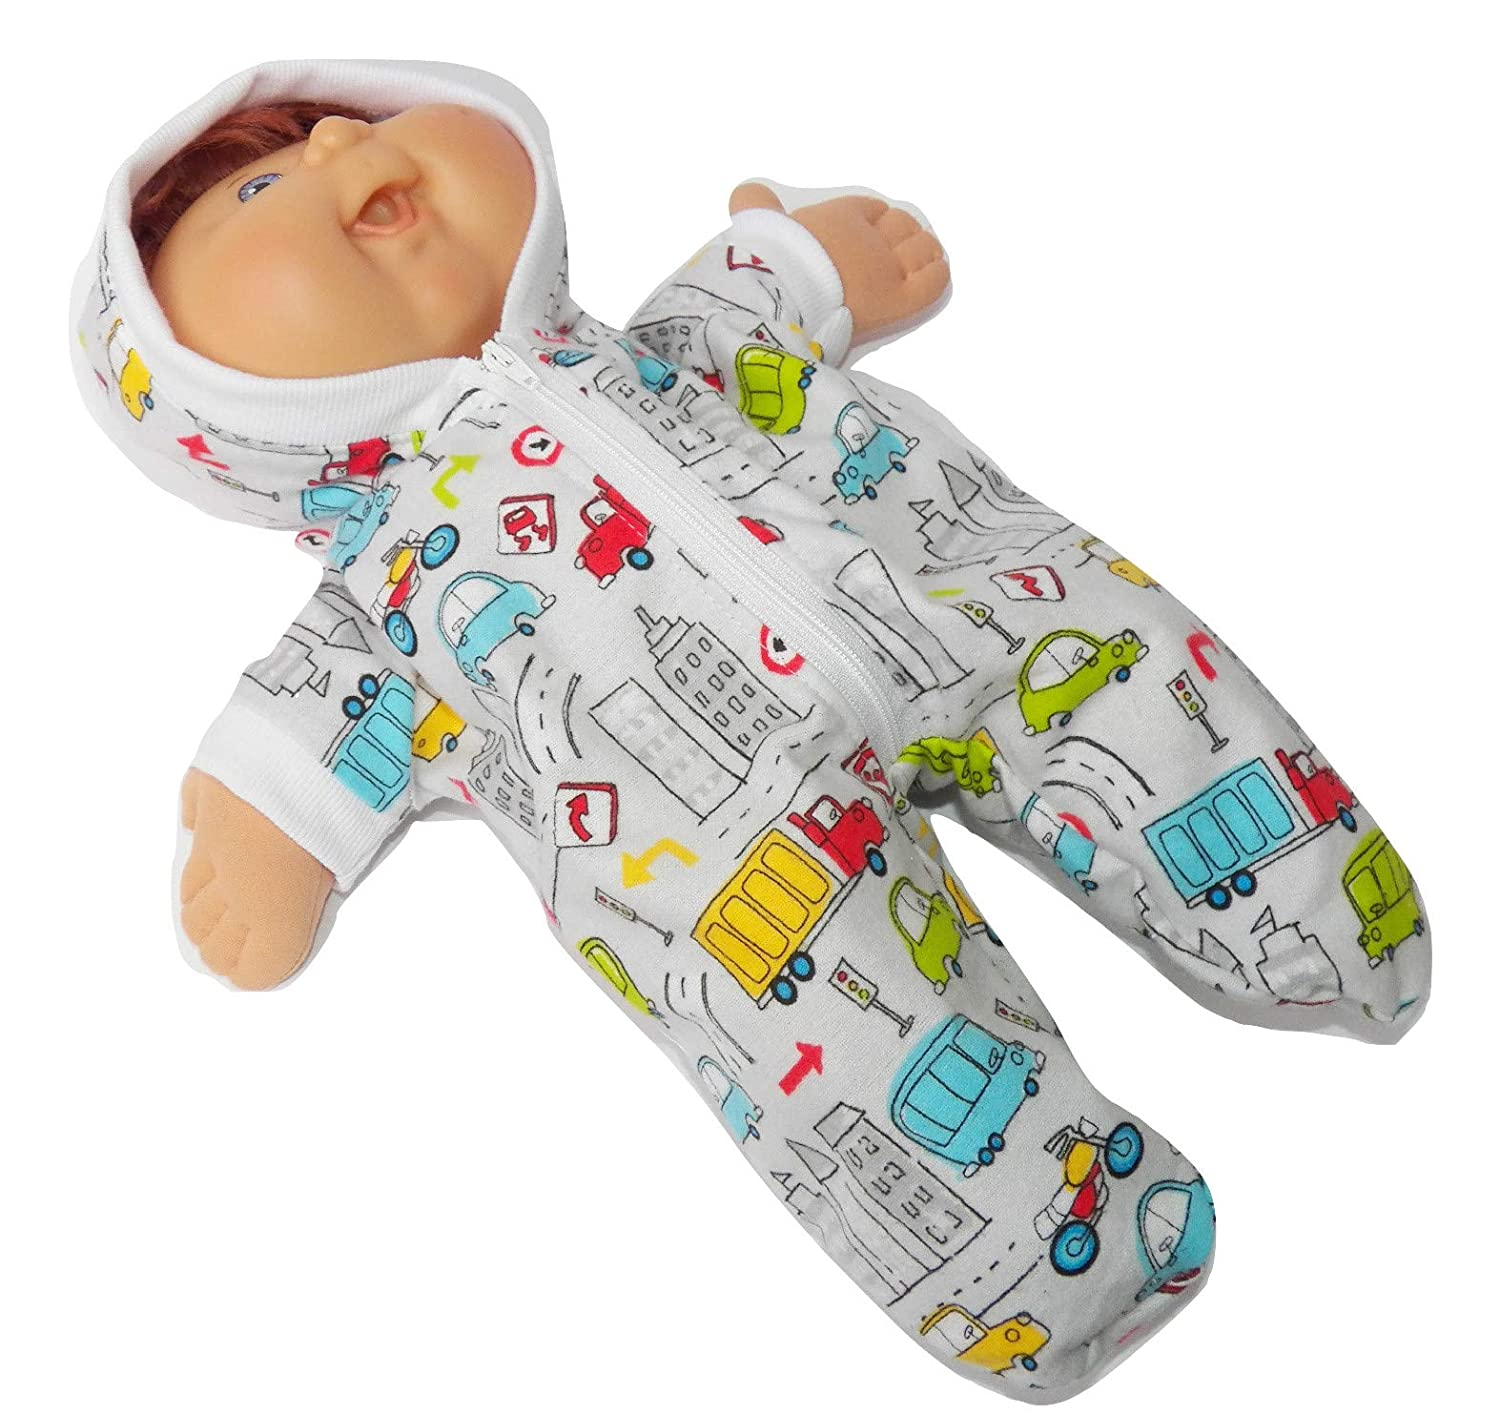 Cabbage Patch Doll Clothes Fits 14 Inch Boy Doll or Preemie Grey Truck Print Pajamas Hooded Romper No Doll